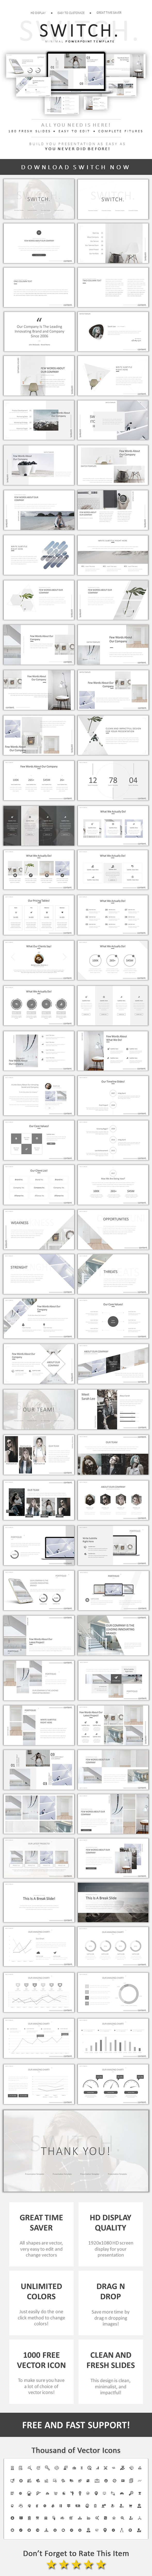 Switch Minimal Powerpoint - Business PowerPoint Templates